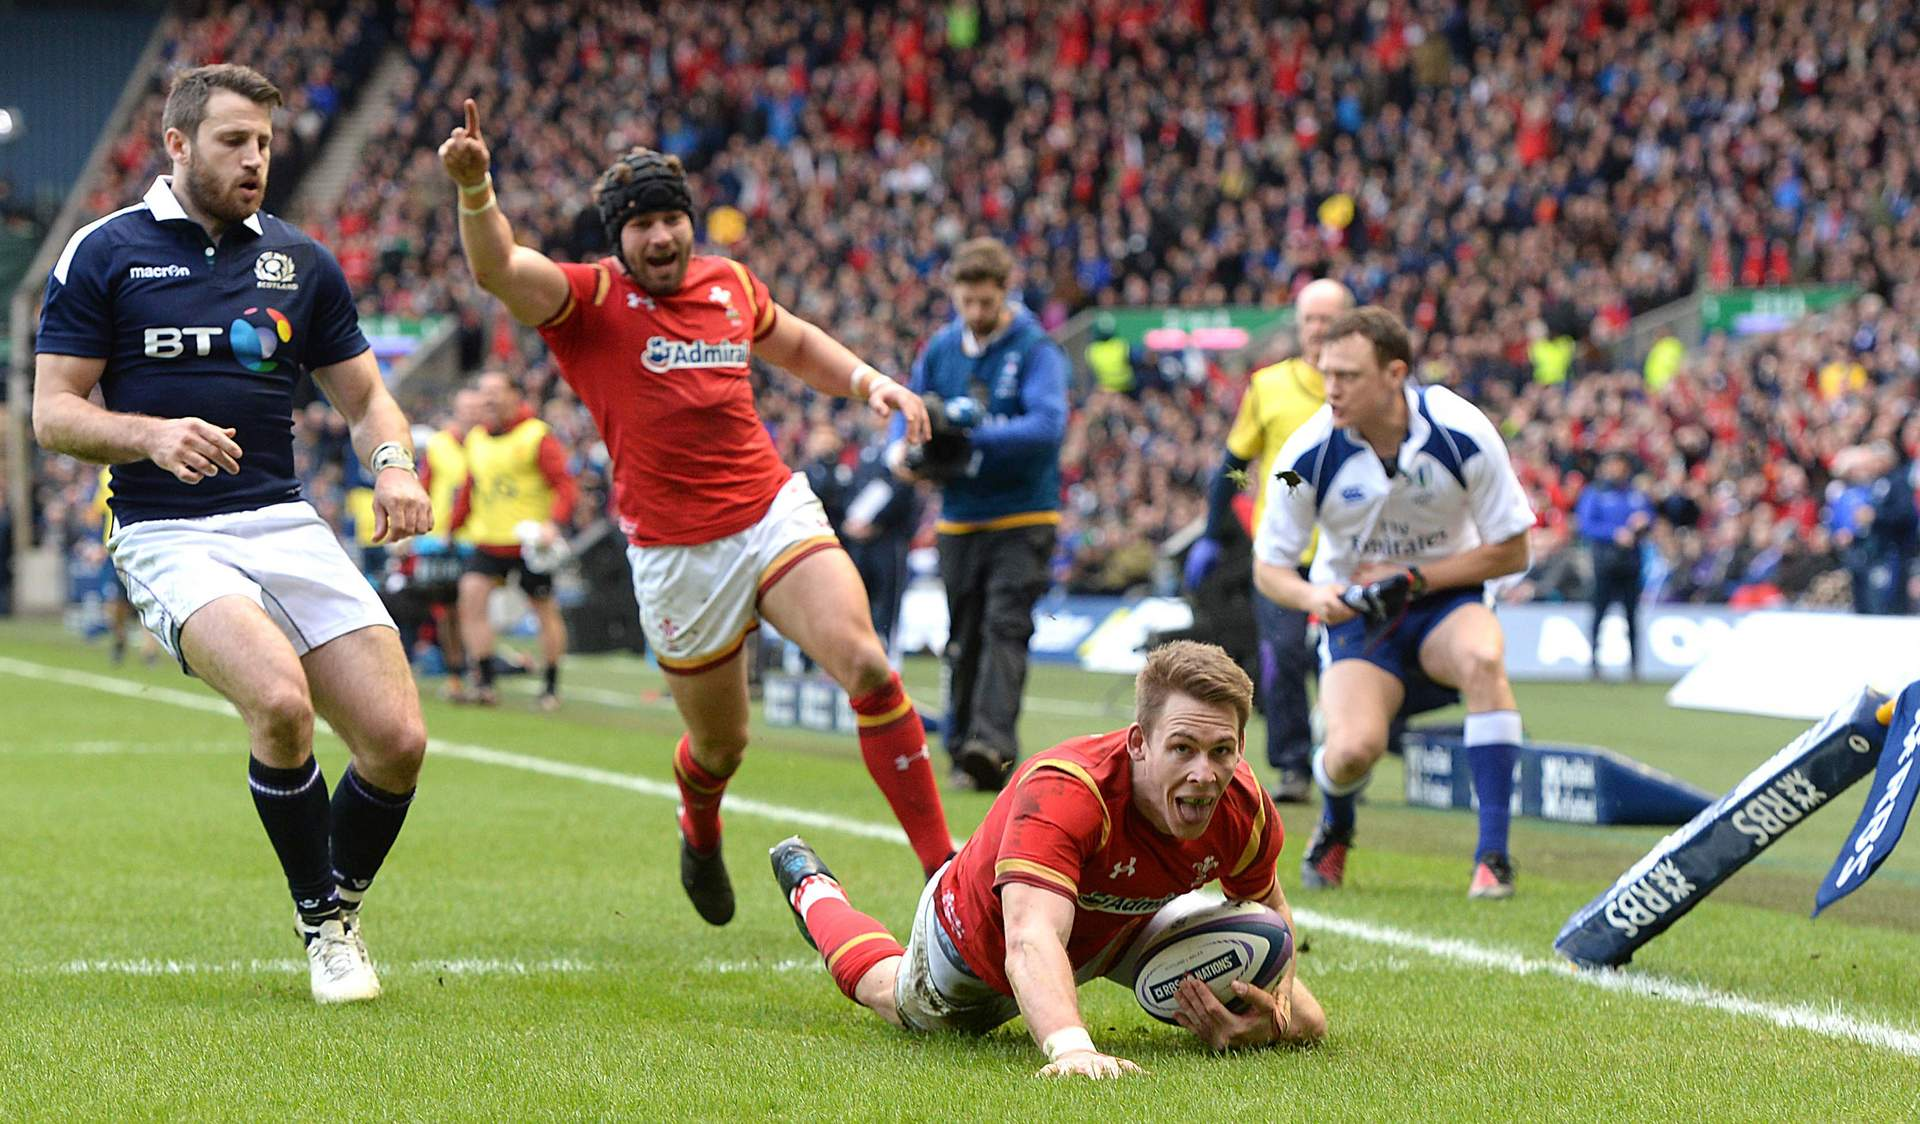 REPORT: Scotland end Wales title hopes